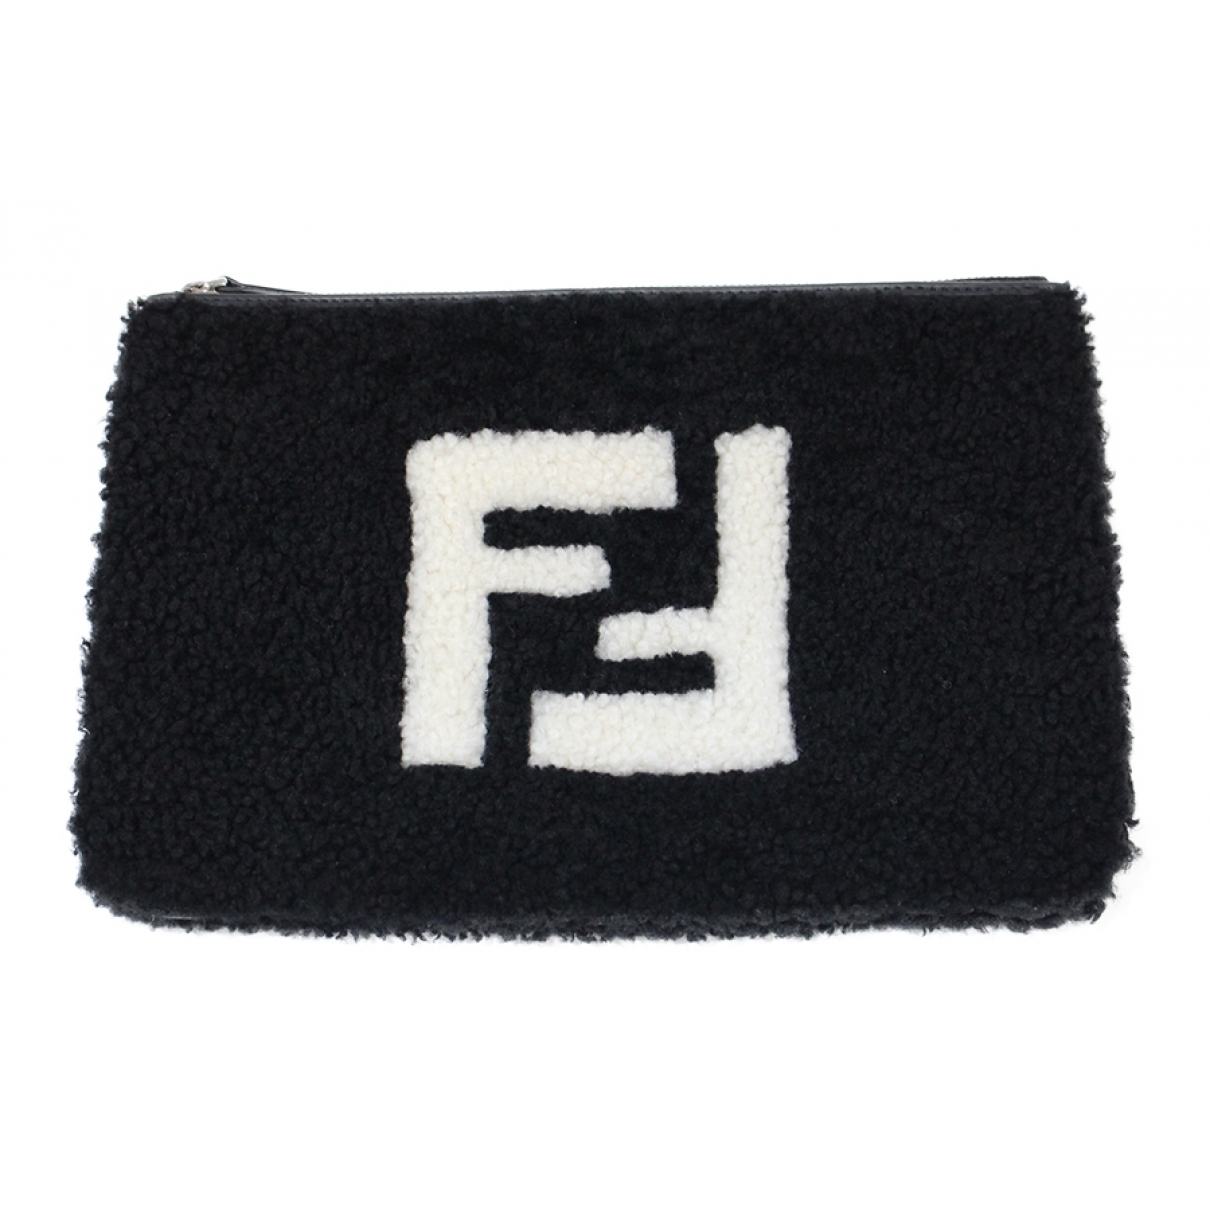 Fendi \N Black Shearling Clutch bag for Women \N